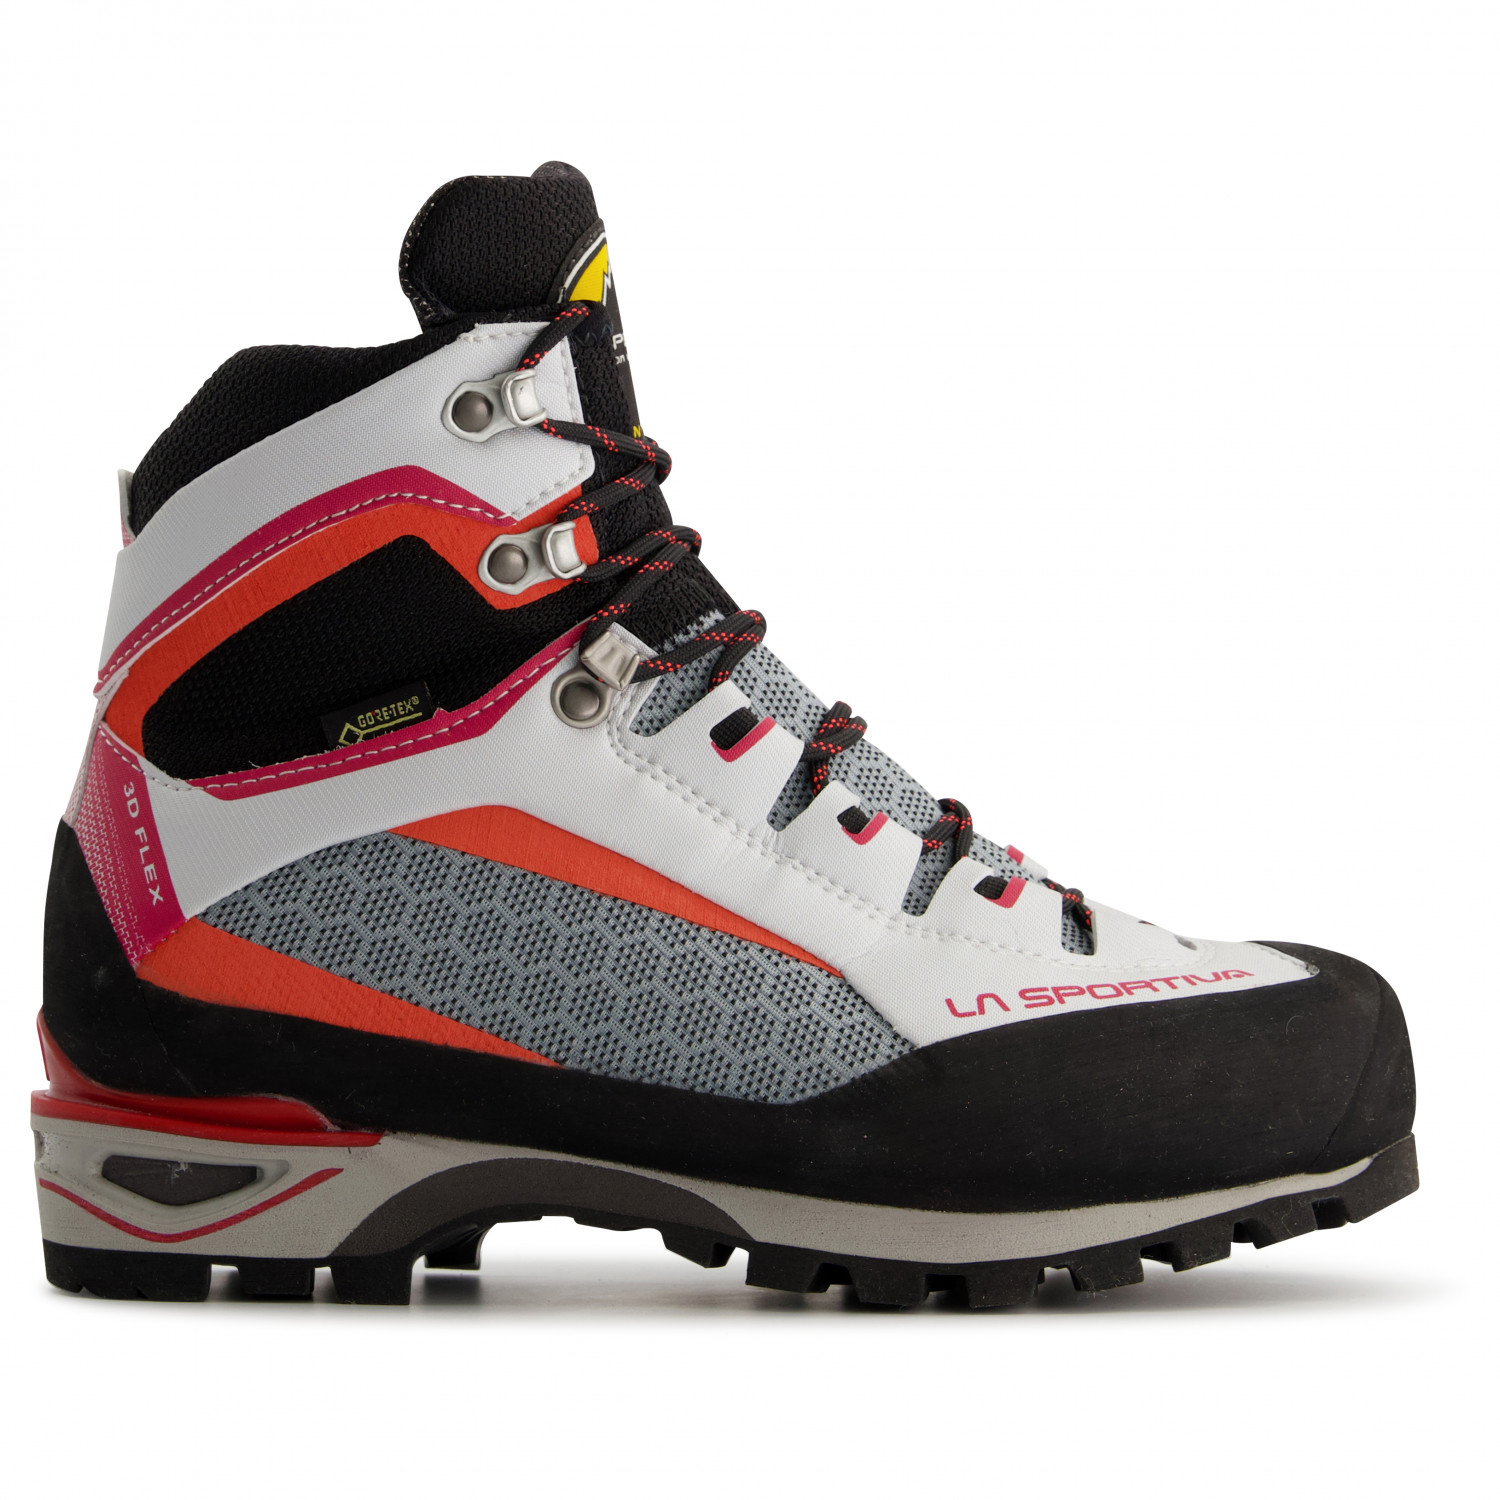 DonnaPorto Bergfreunde Franco it Gtx Tower Trango Sportiva La mb6vYIf7gy